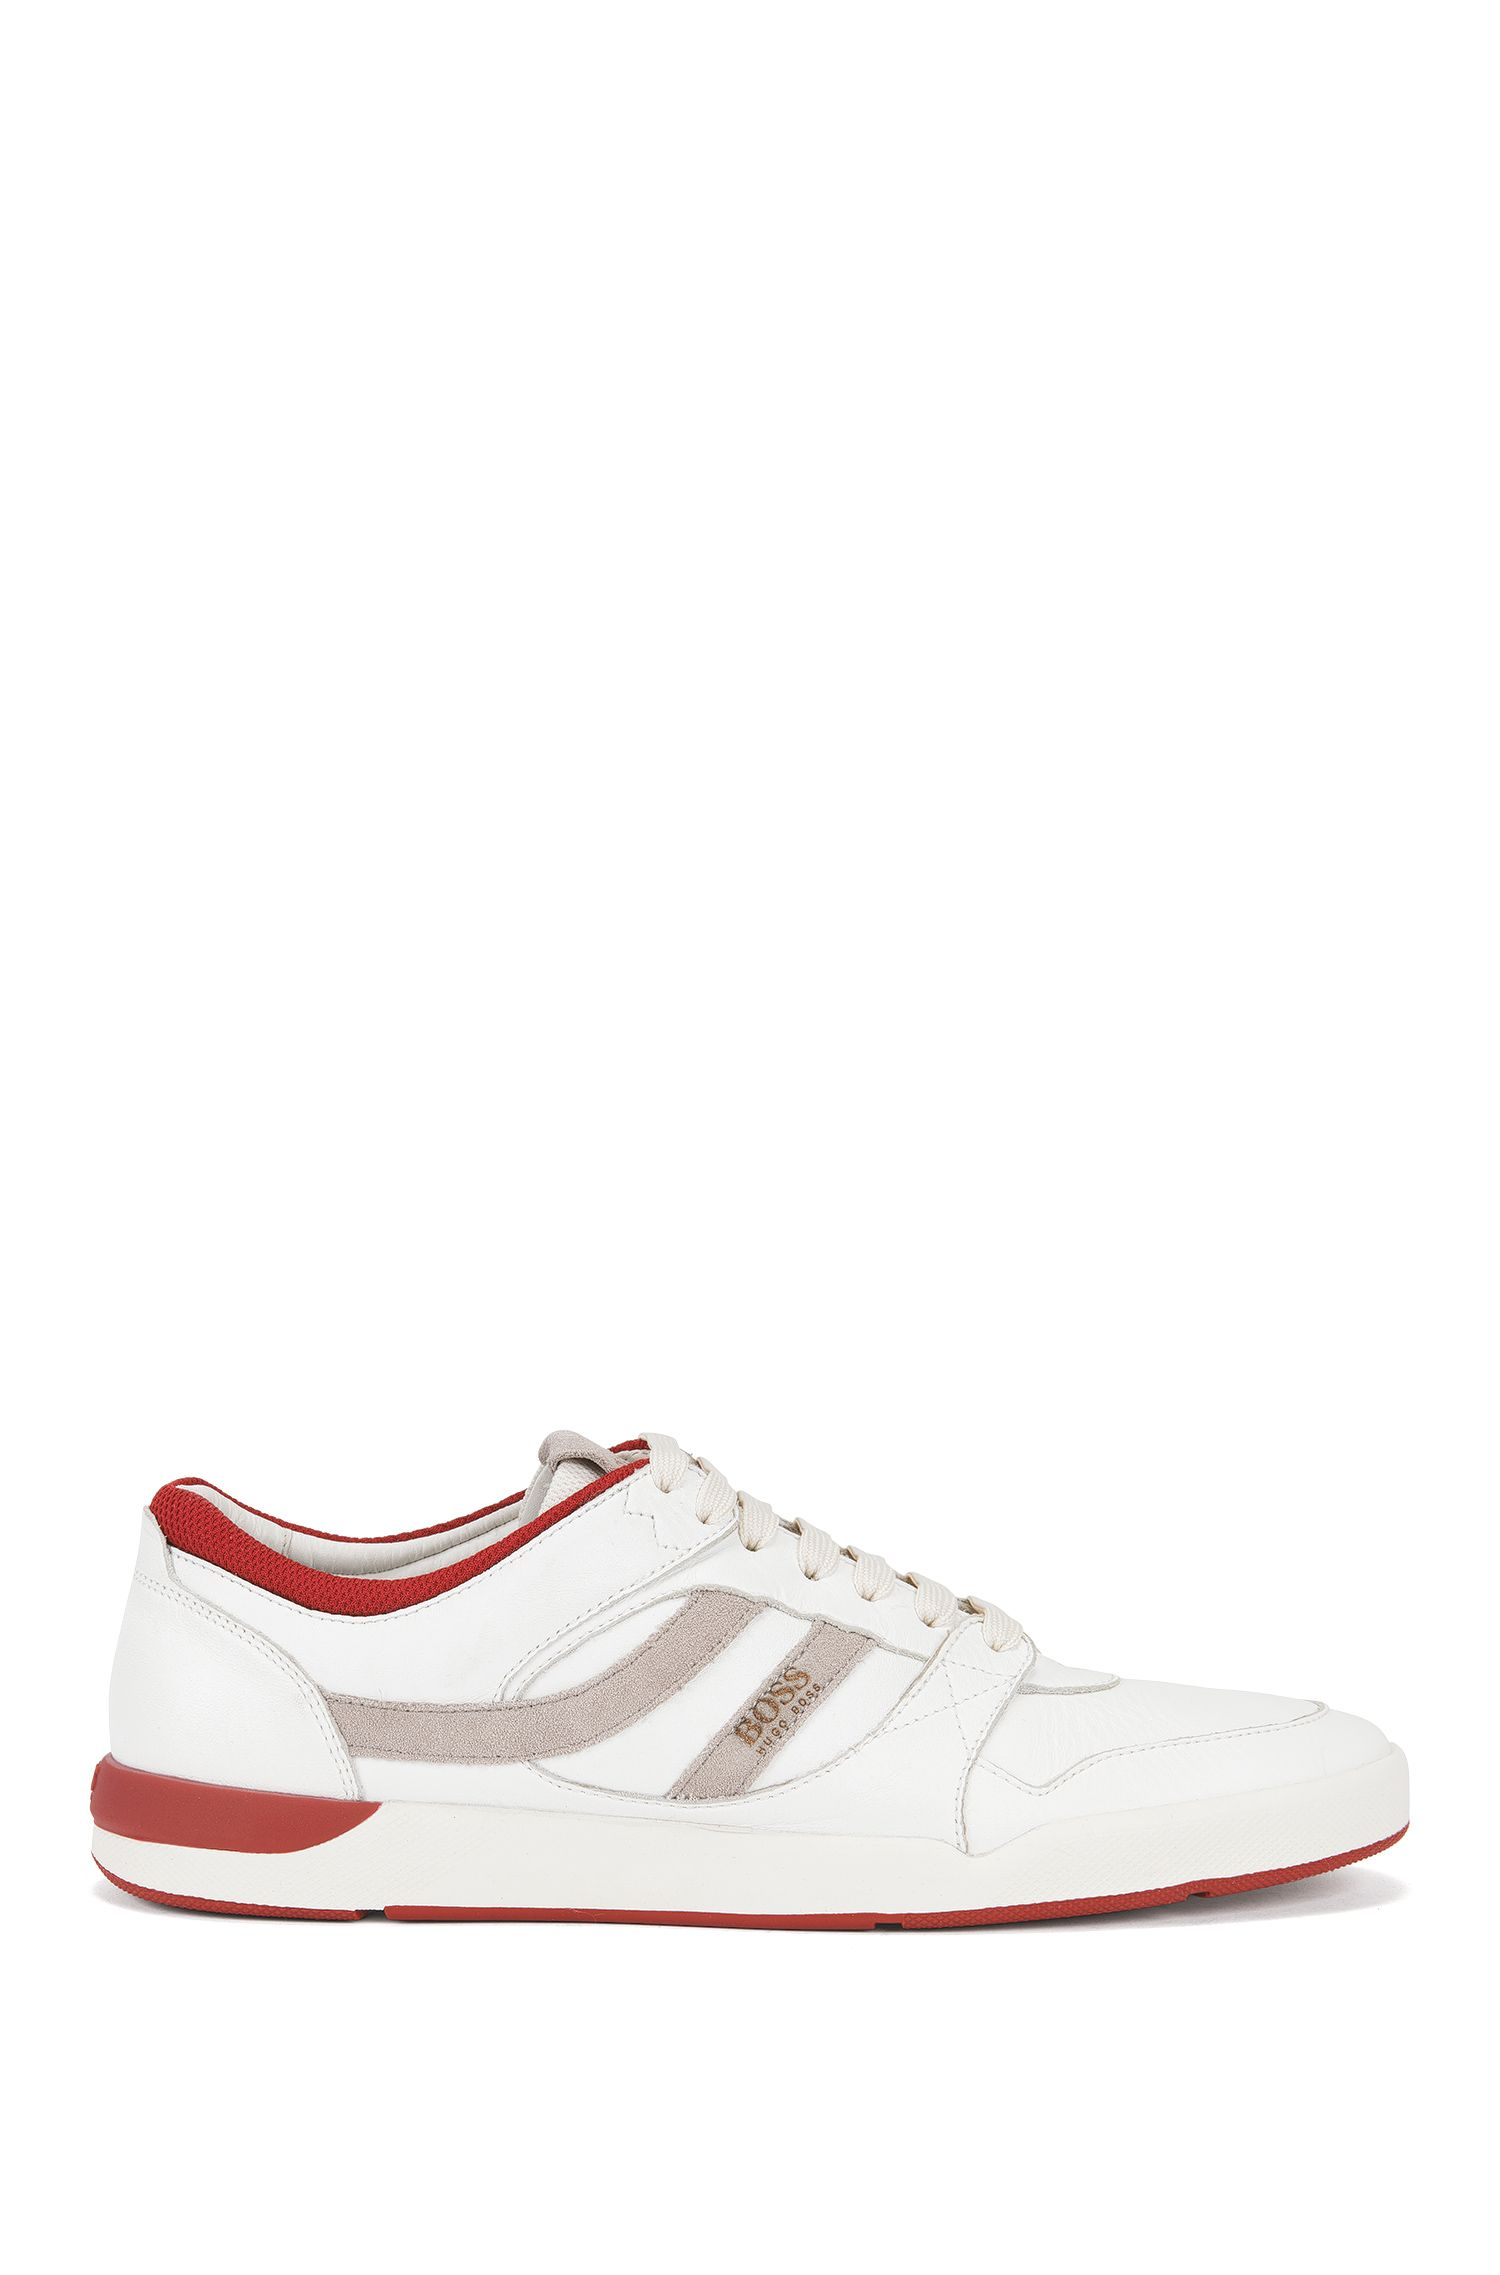 Sneakers stringate in pelle lavata